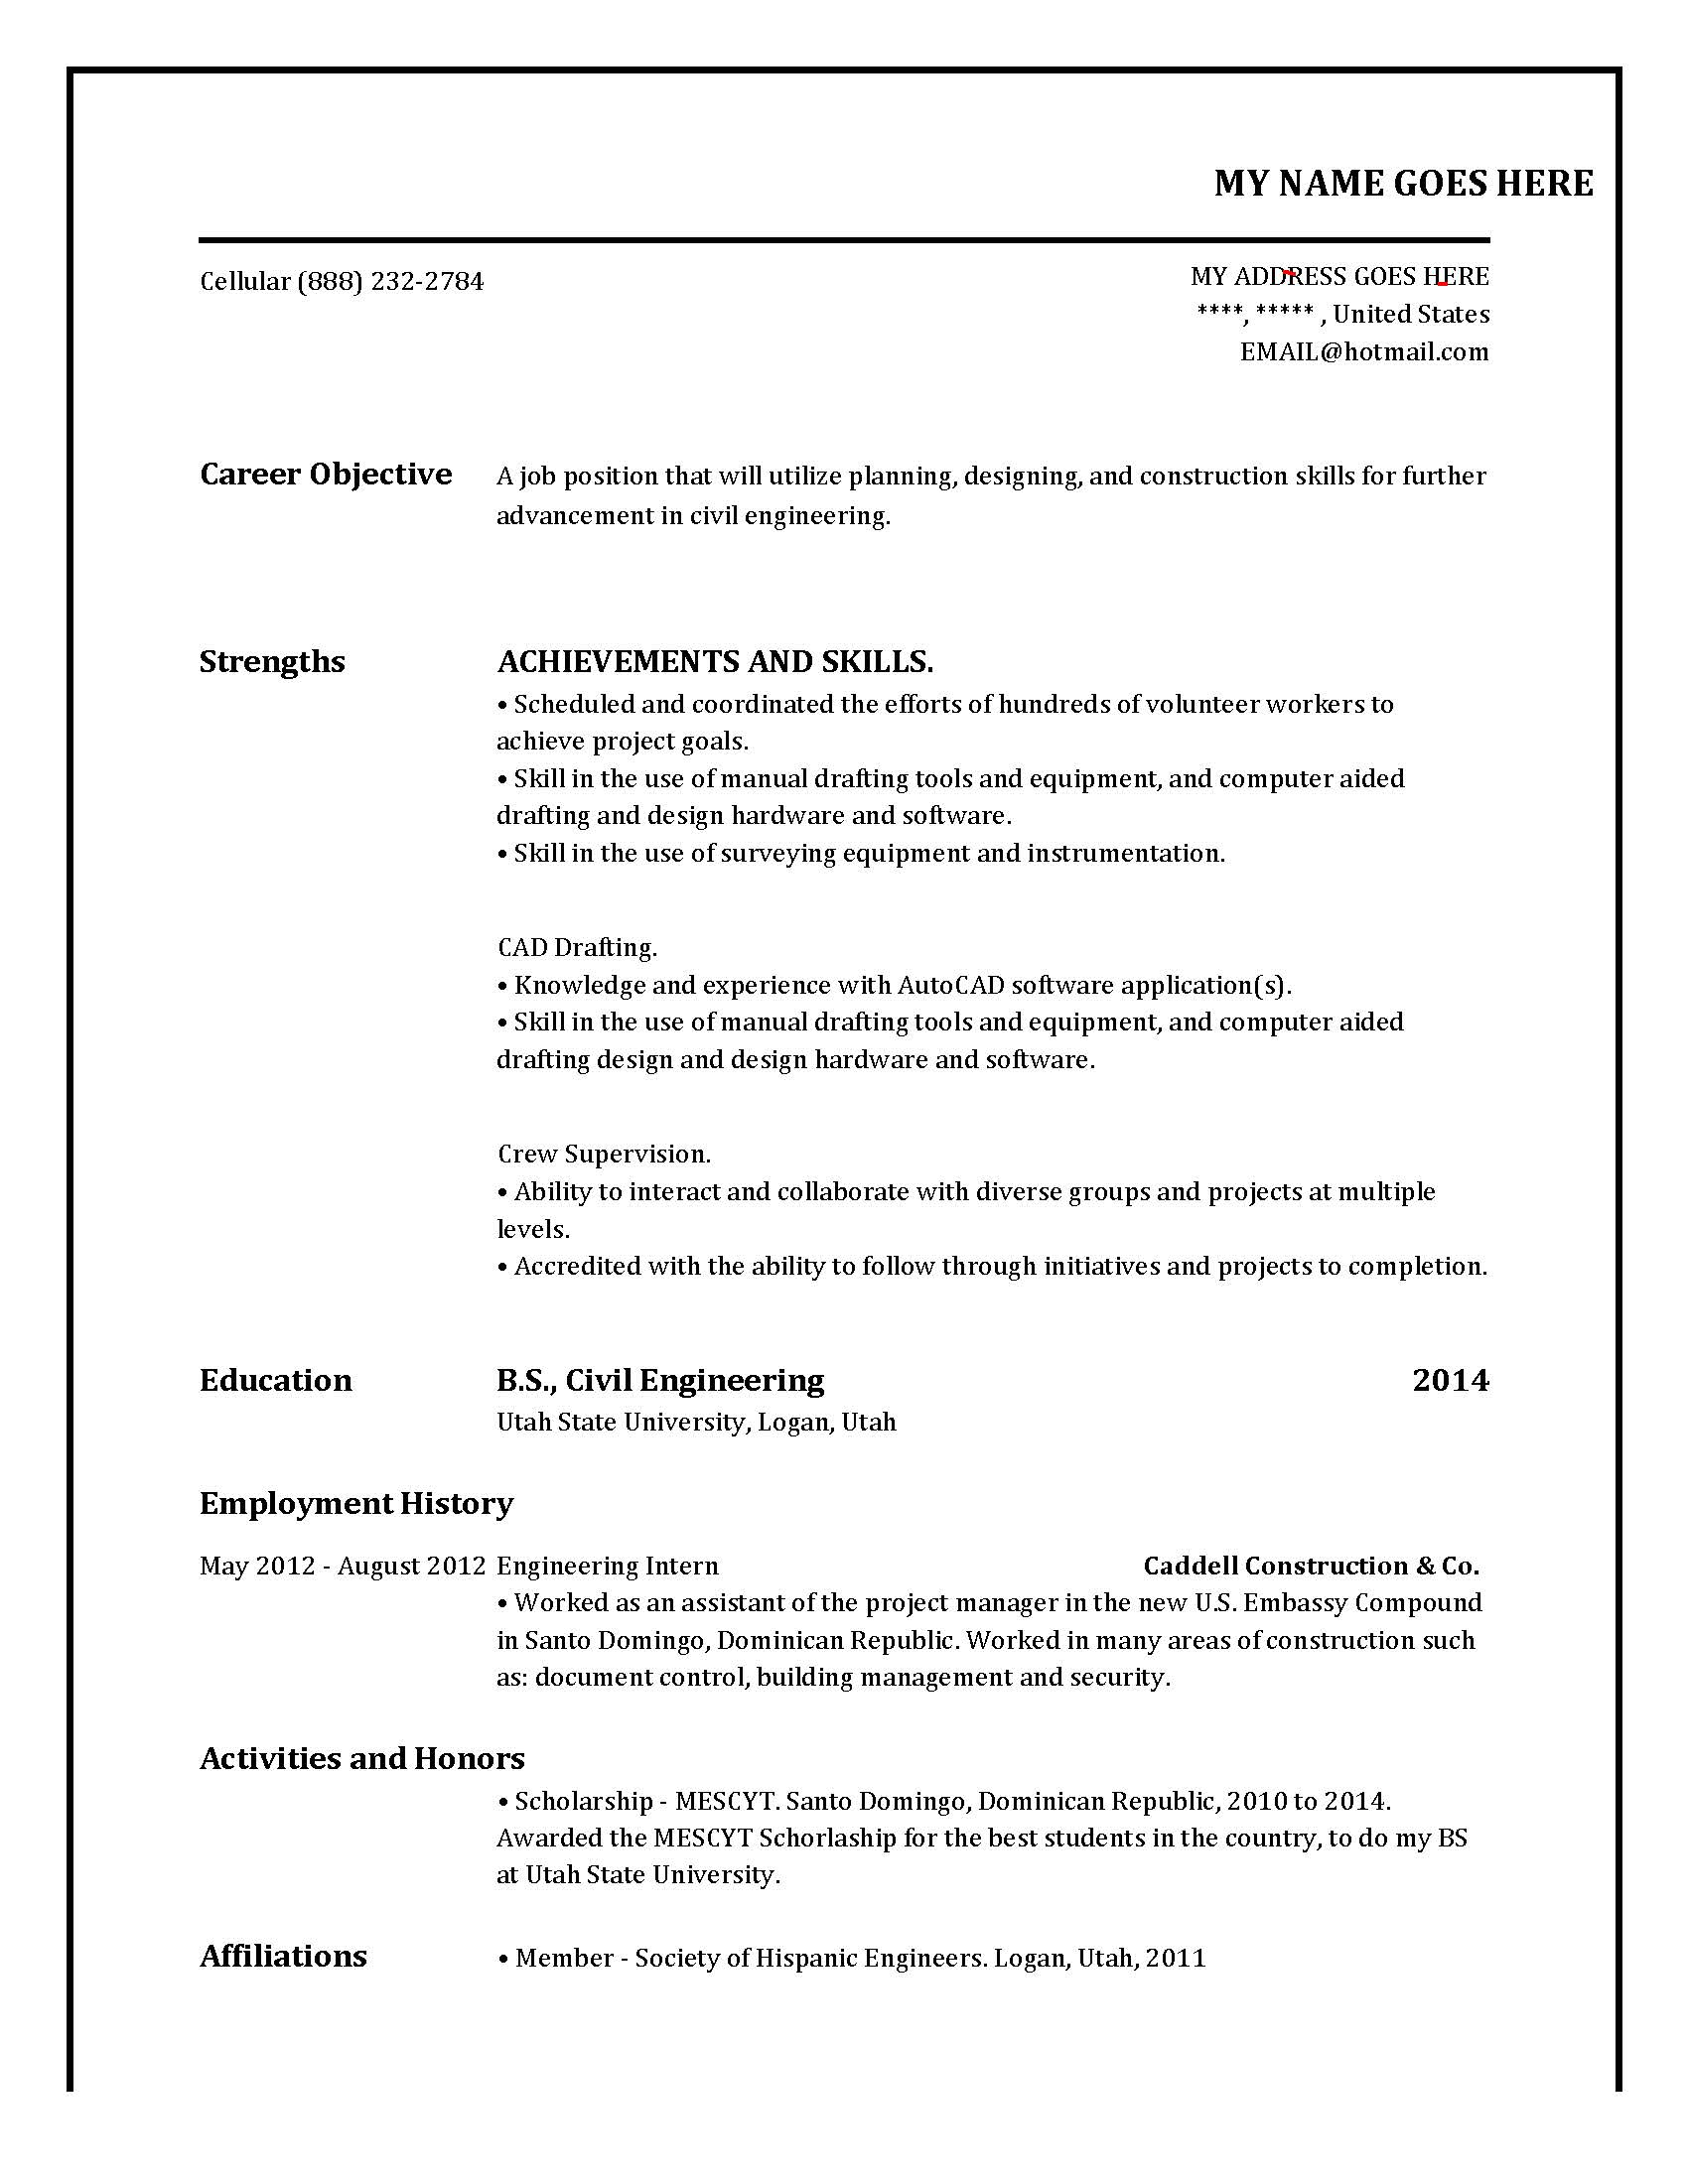 create my cv for free resume template do my cv online digital - Resume Online Builder Free